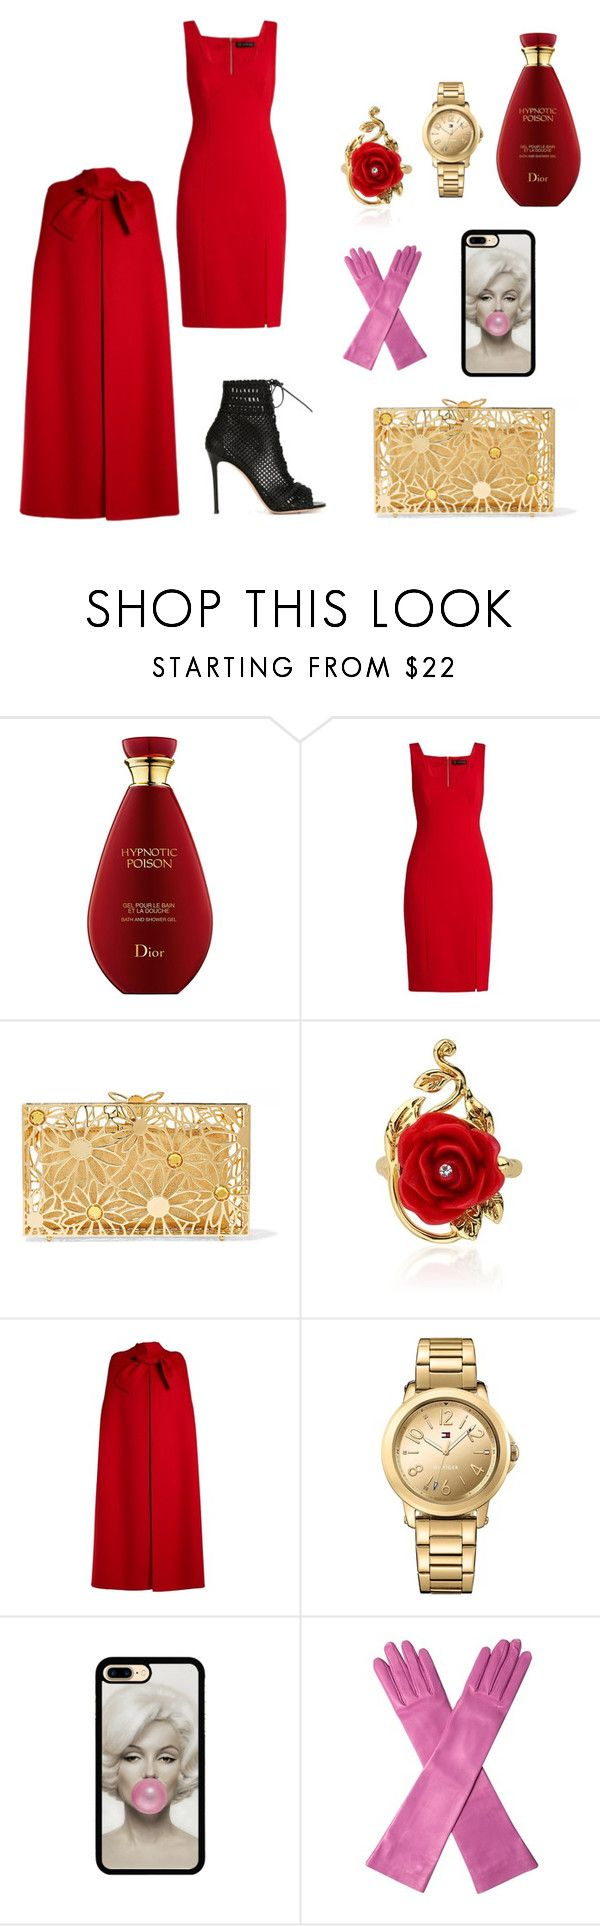 """Vamp with a sense of humor"" by explorer-14792500929 on Polyvore featuring мода, Versace, Charlotte Olympia, Disney, Valentino, Tommy Hilfiger, Gucci и Gianvito Rossi"